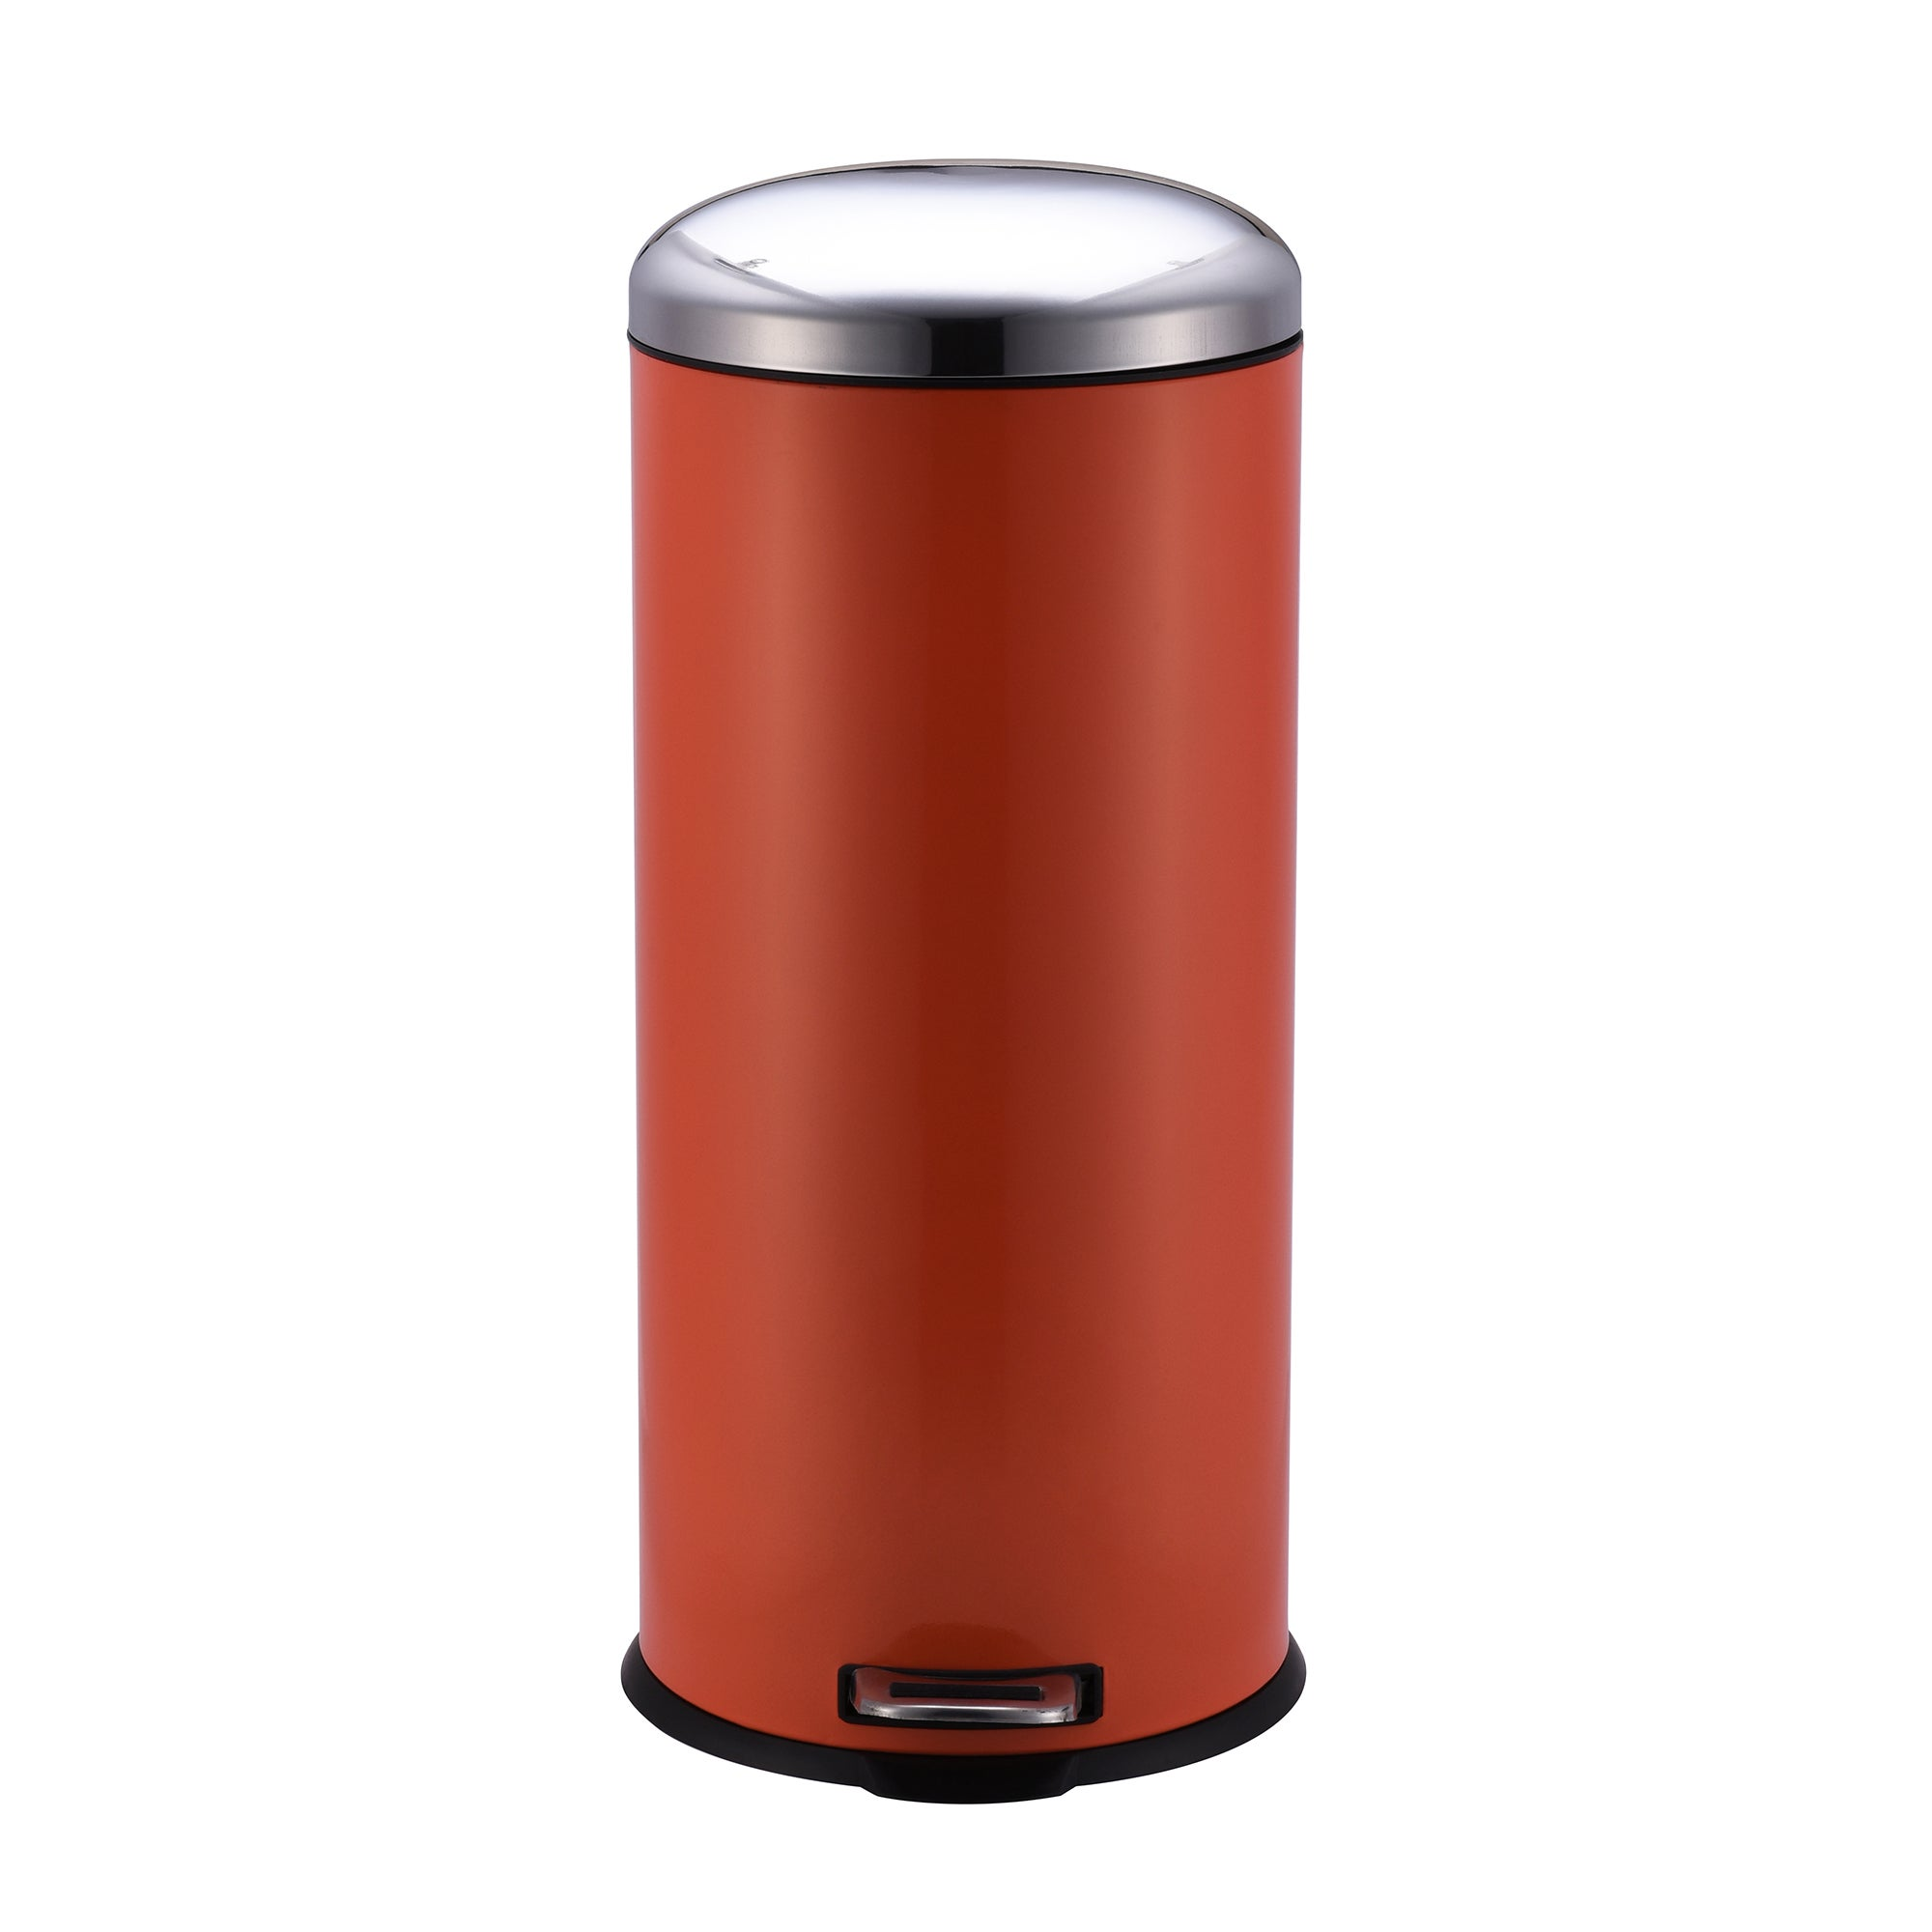 Image of 30 Litre Orange Pedal Bin Orange